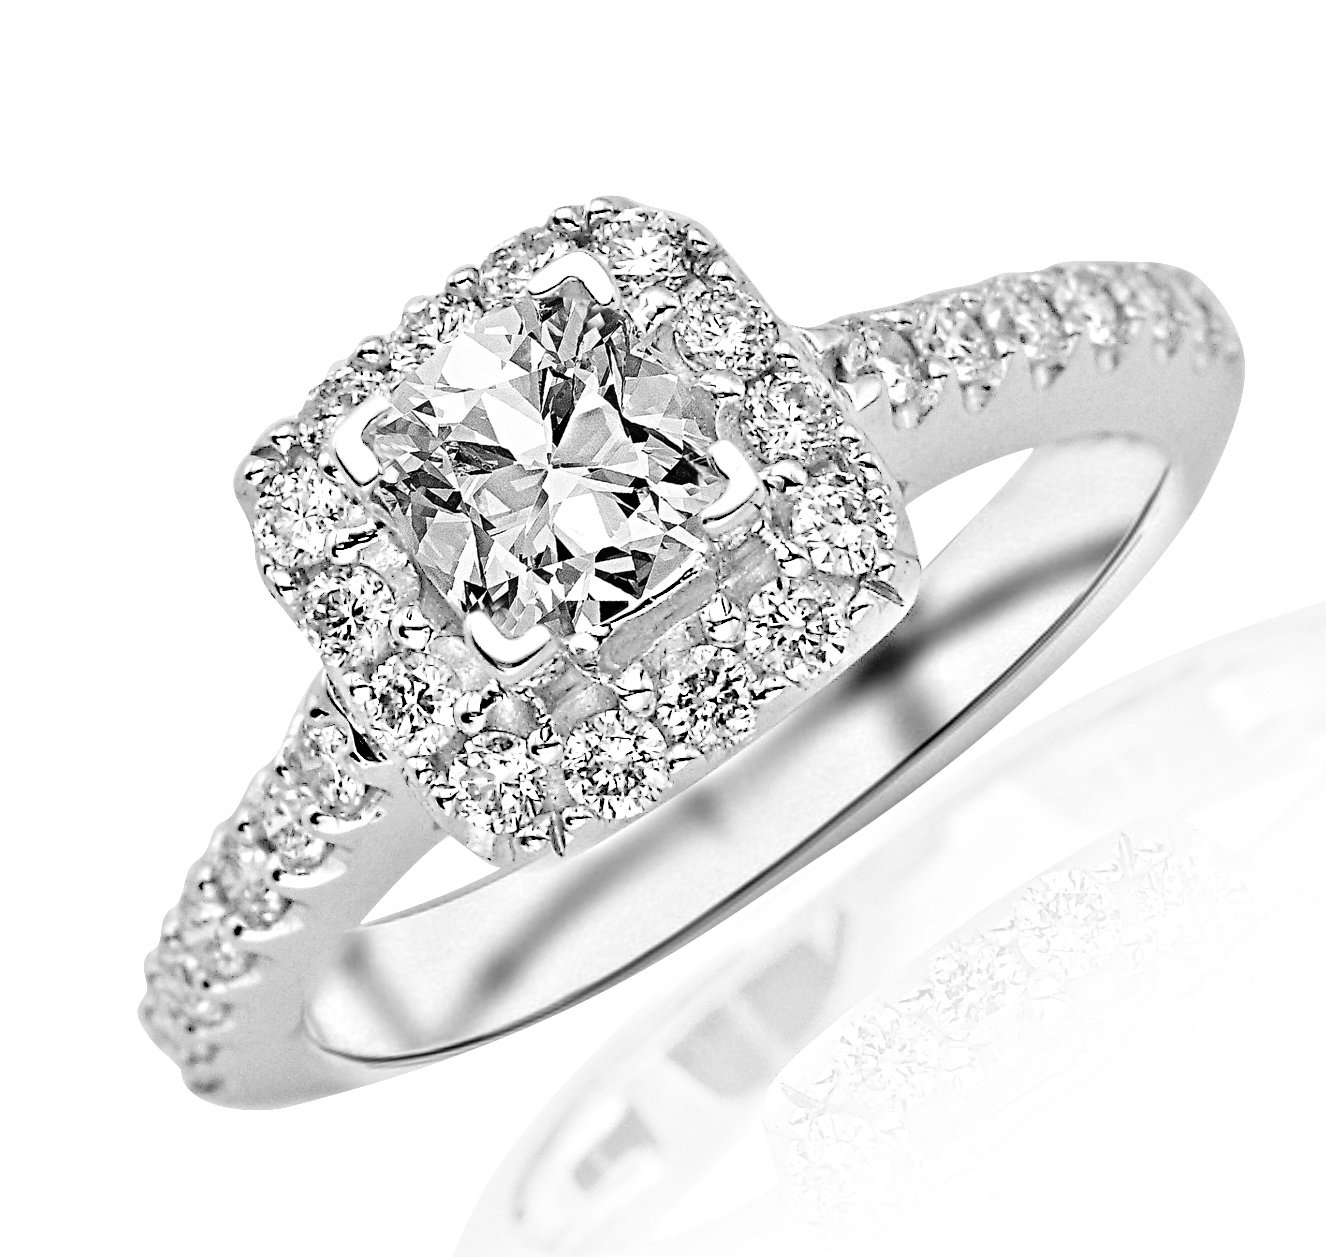 1.26 Carat GIA Certified Square Halo Diamond Engagement Ring (G Color, VS2 Clarity)